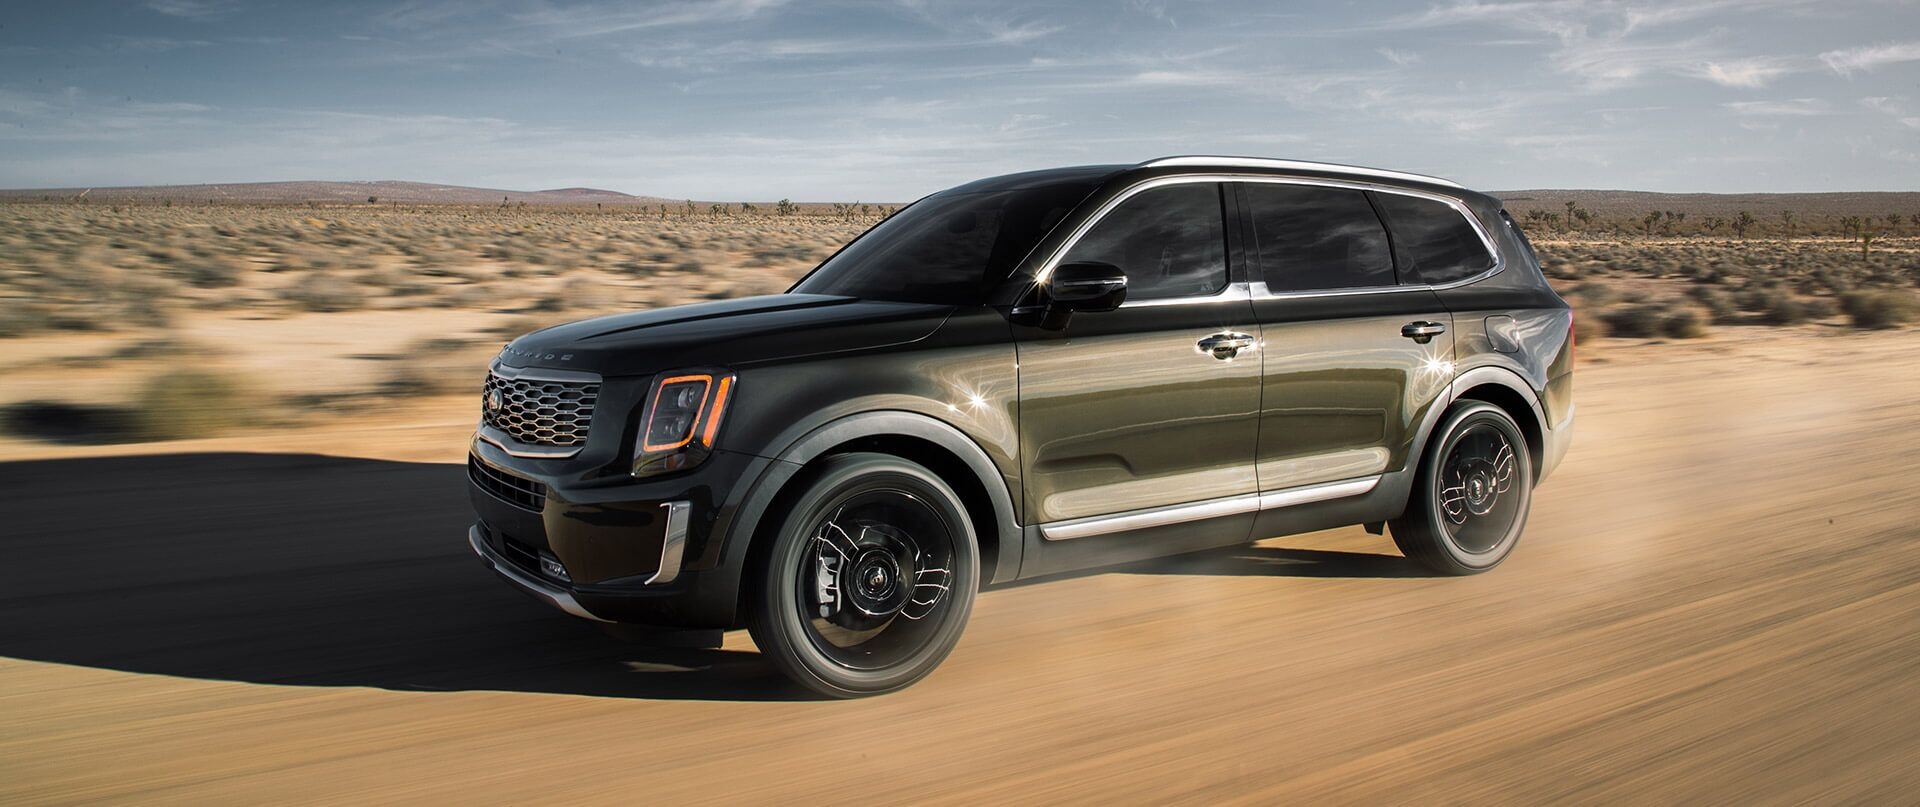 2020 Kia Telluride in Mission, TX